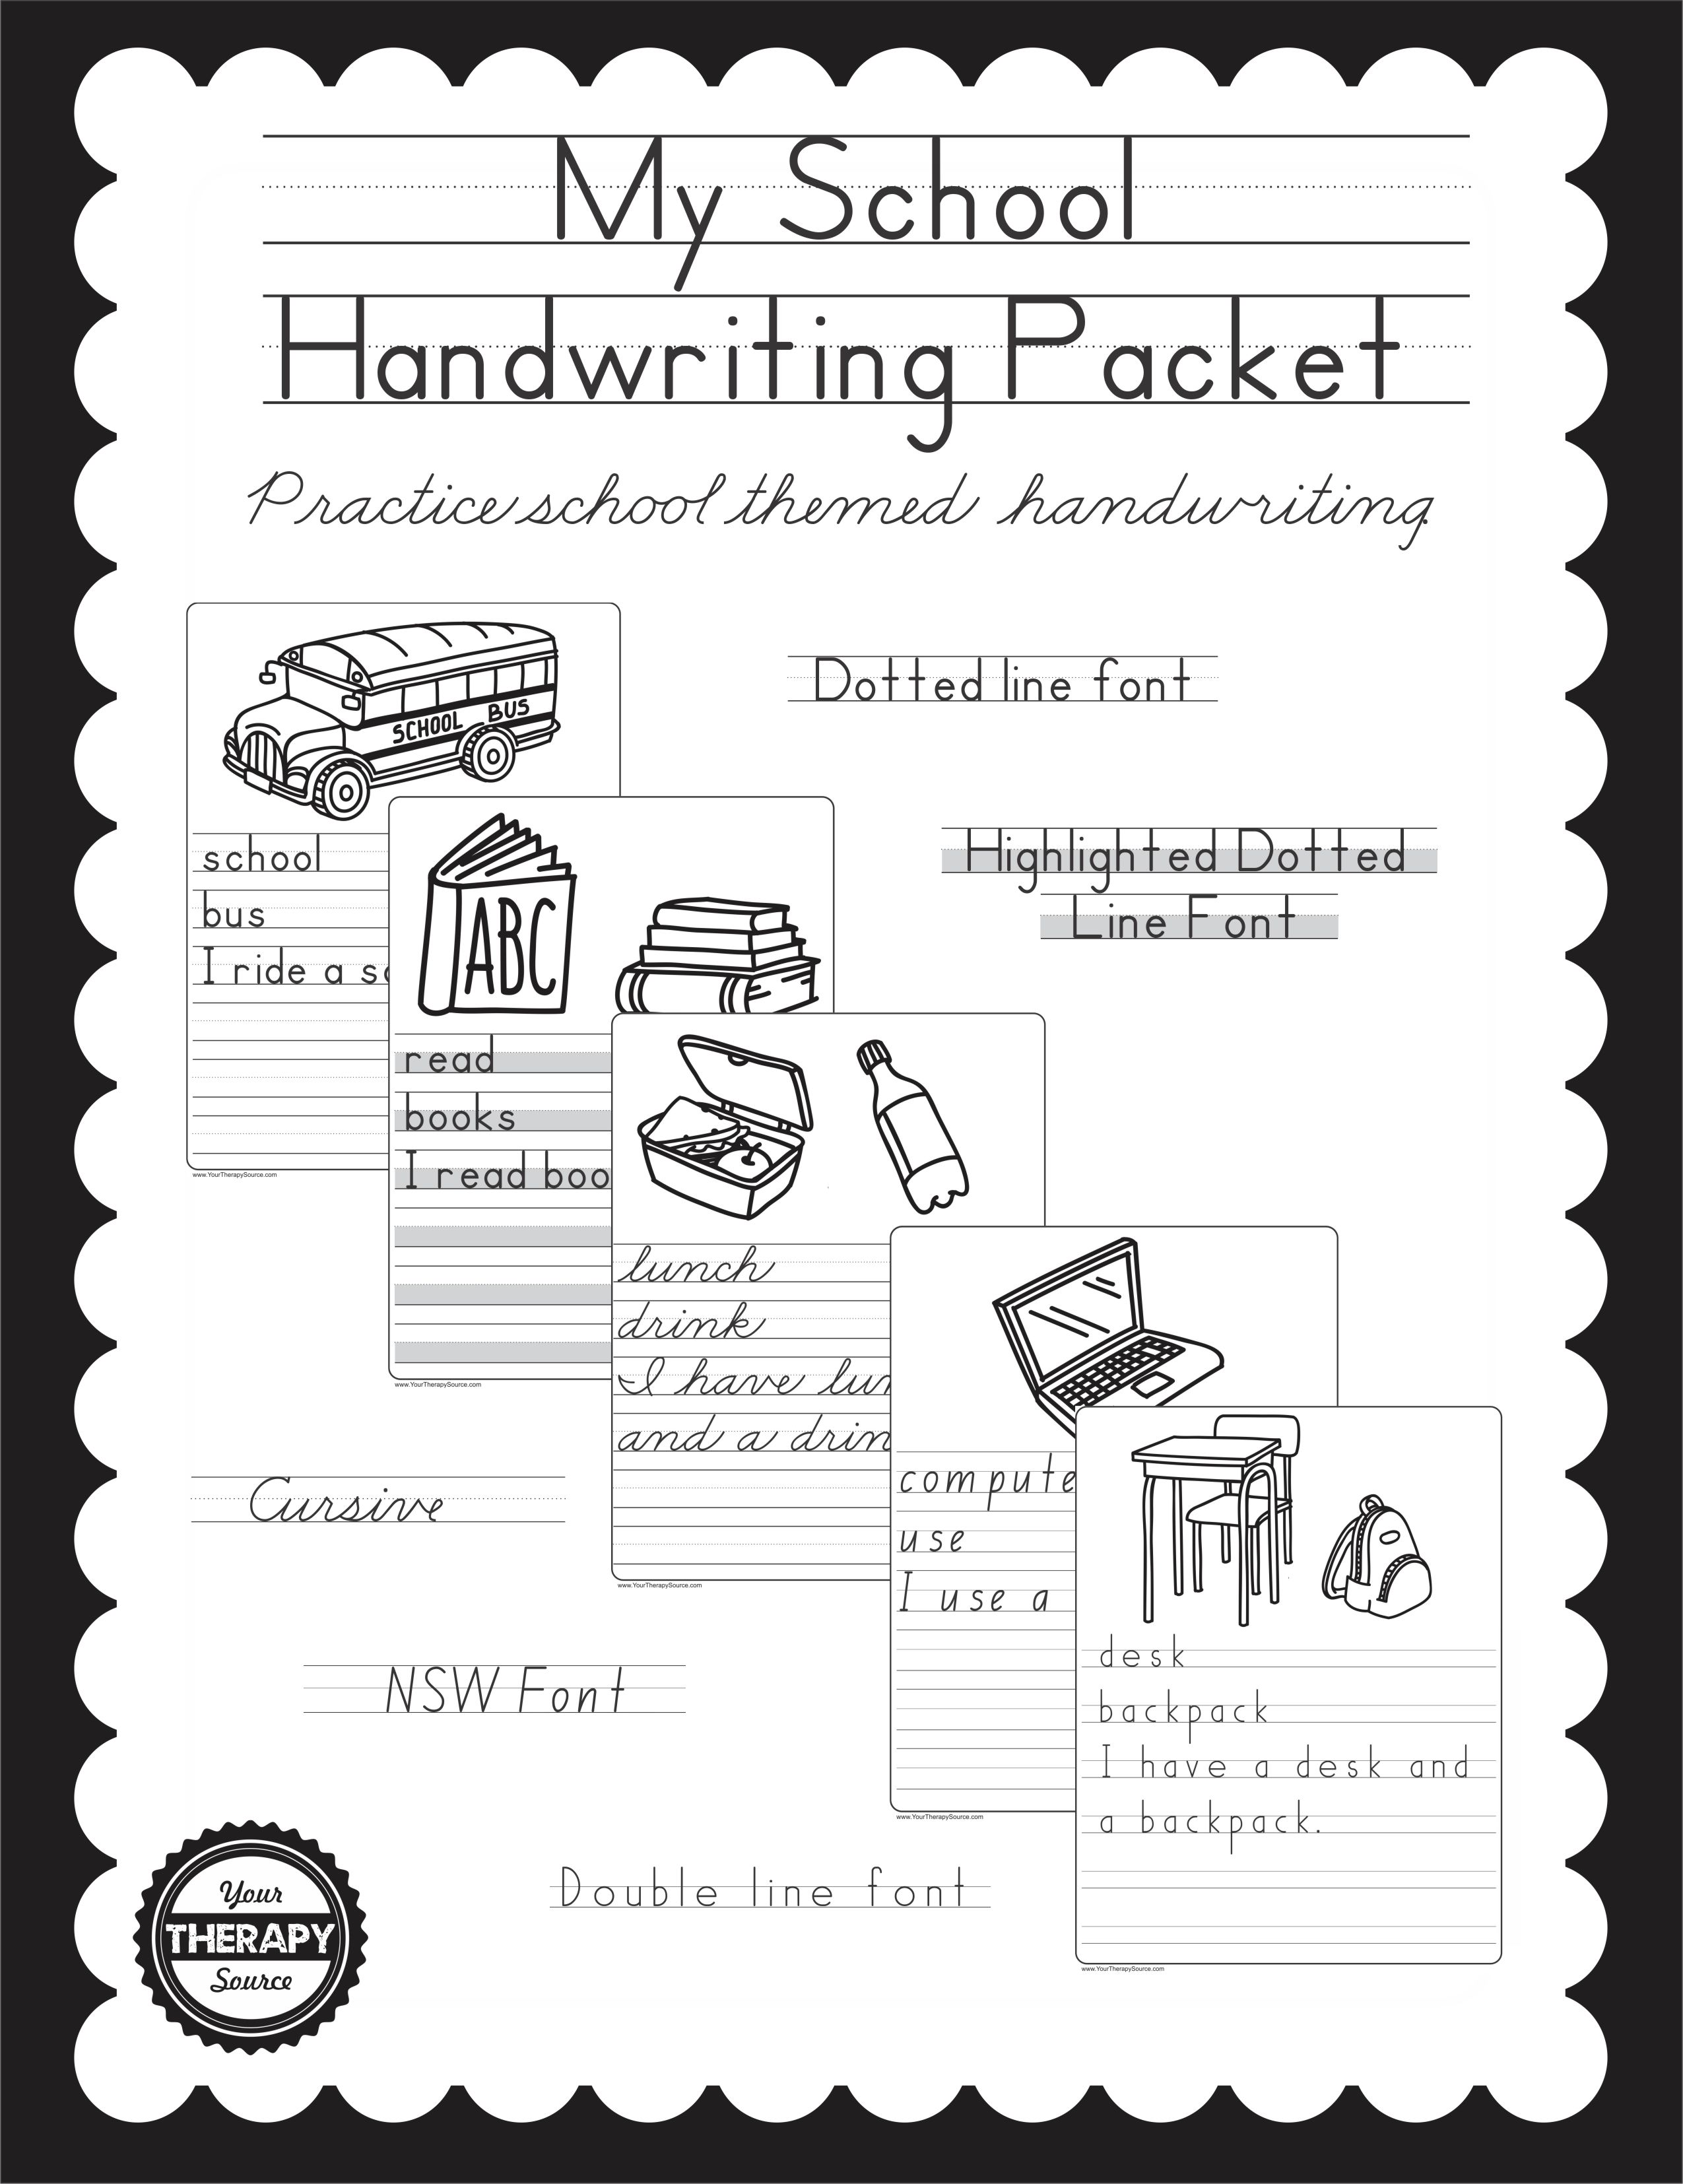 My school handwriting packet your therapy source subscribe to our newsletter fandeluxe Choice Image